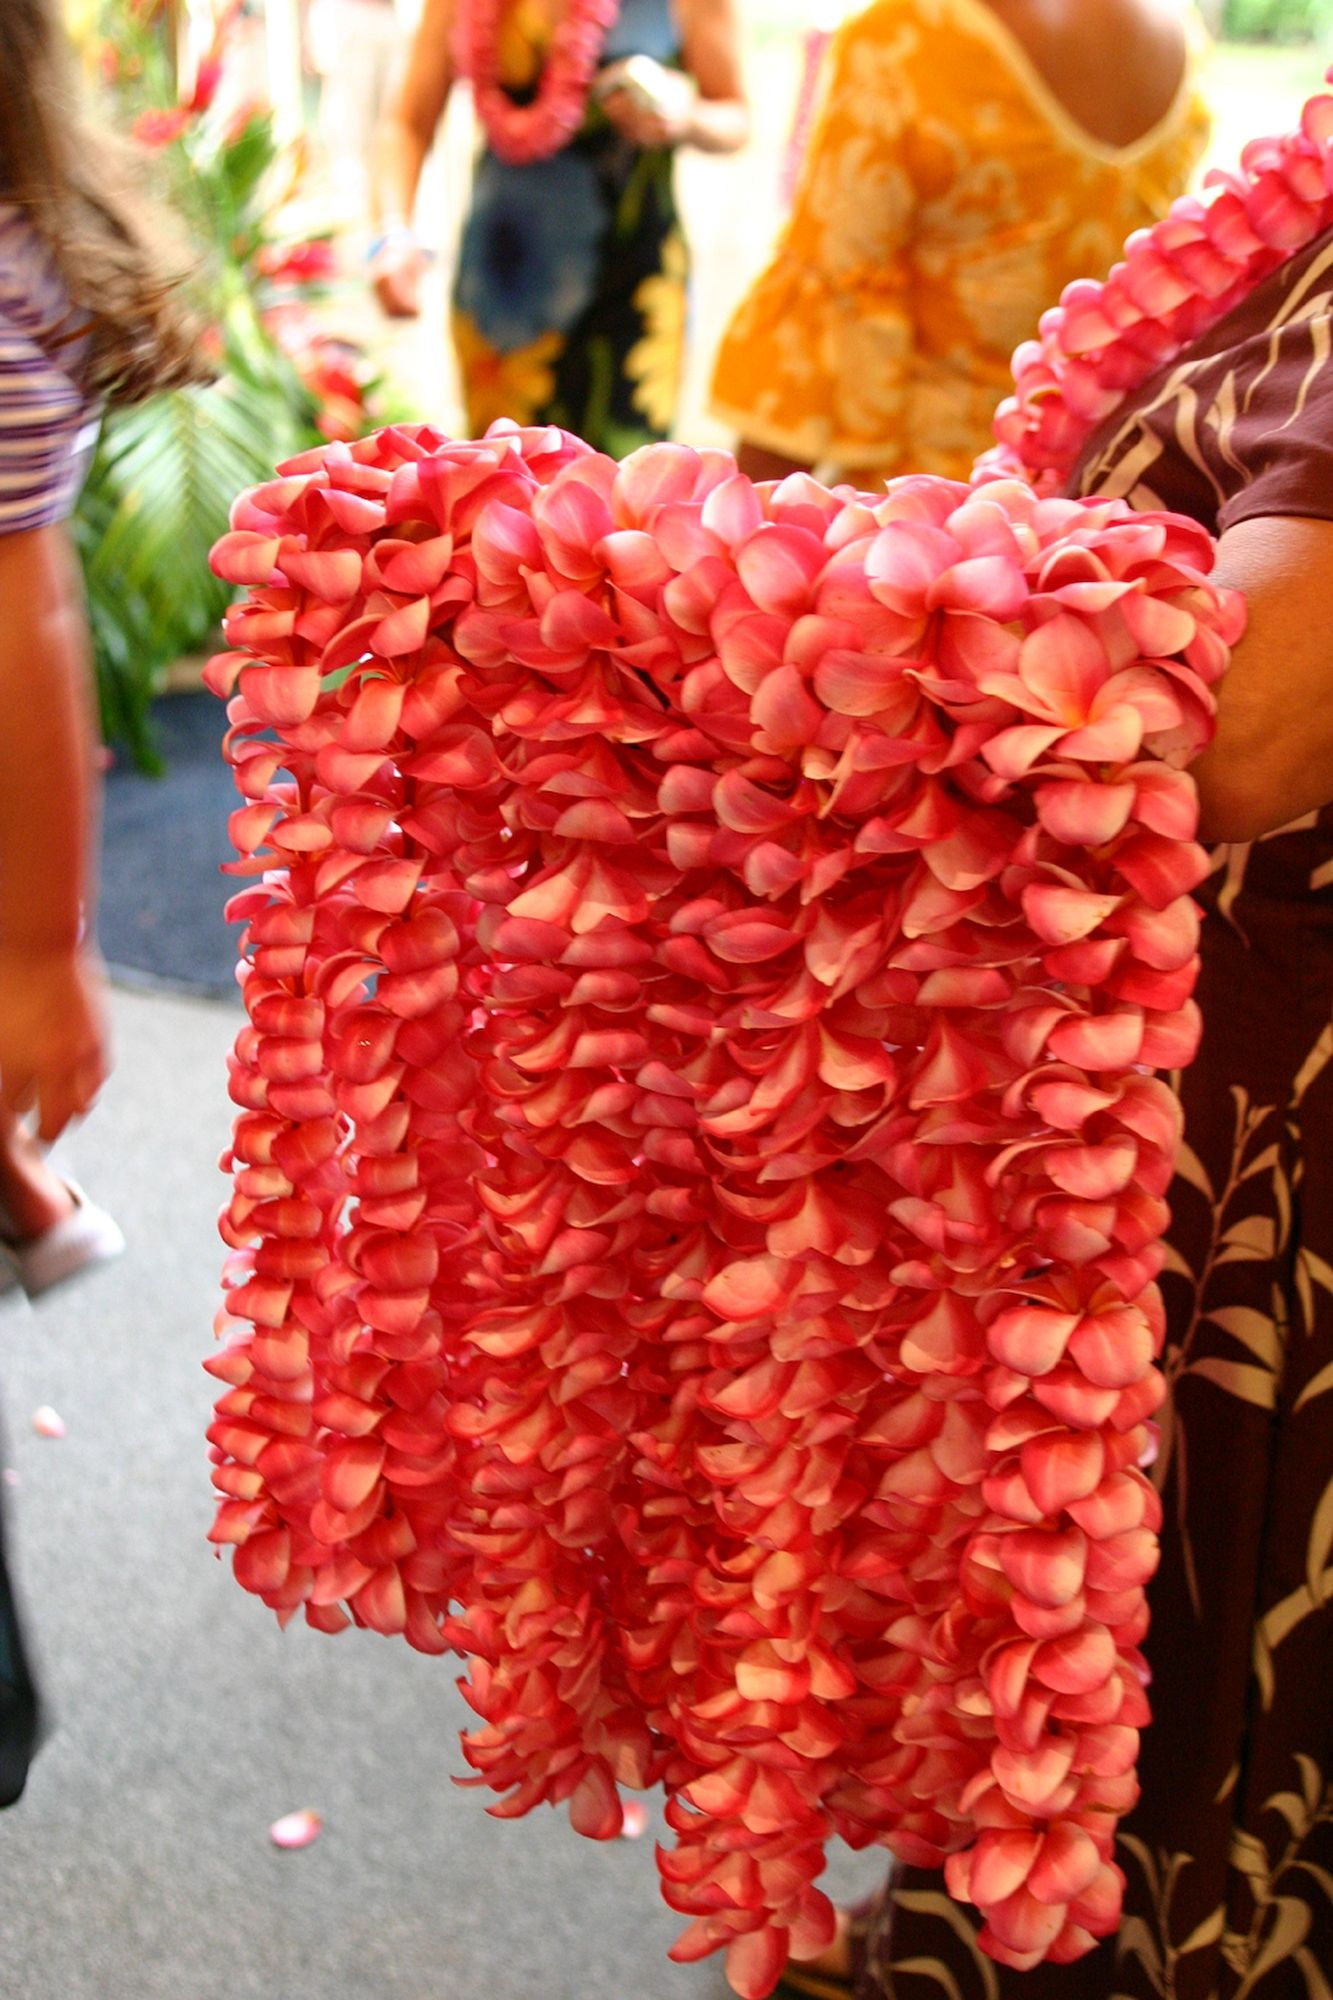 Lei Can Be Made With Construction Paper Yarn Solid: Lei's I Can Almost Smell Them Through